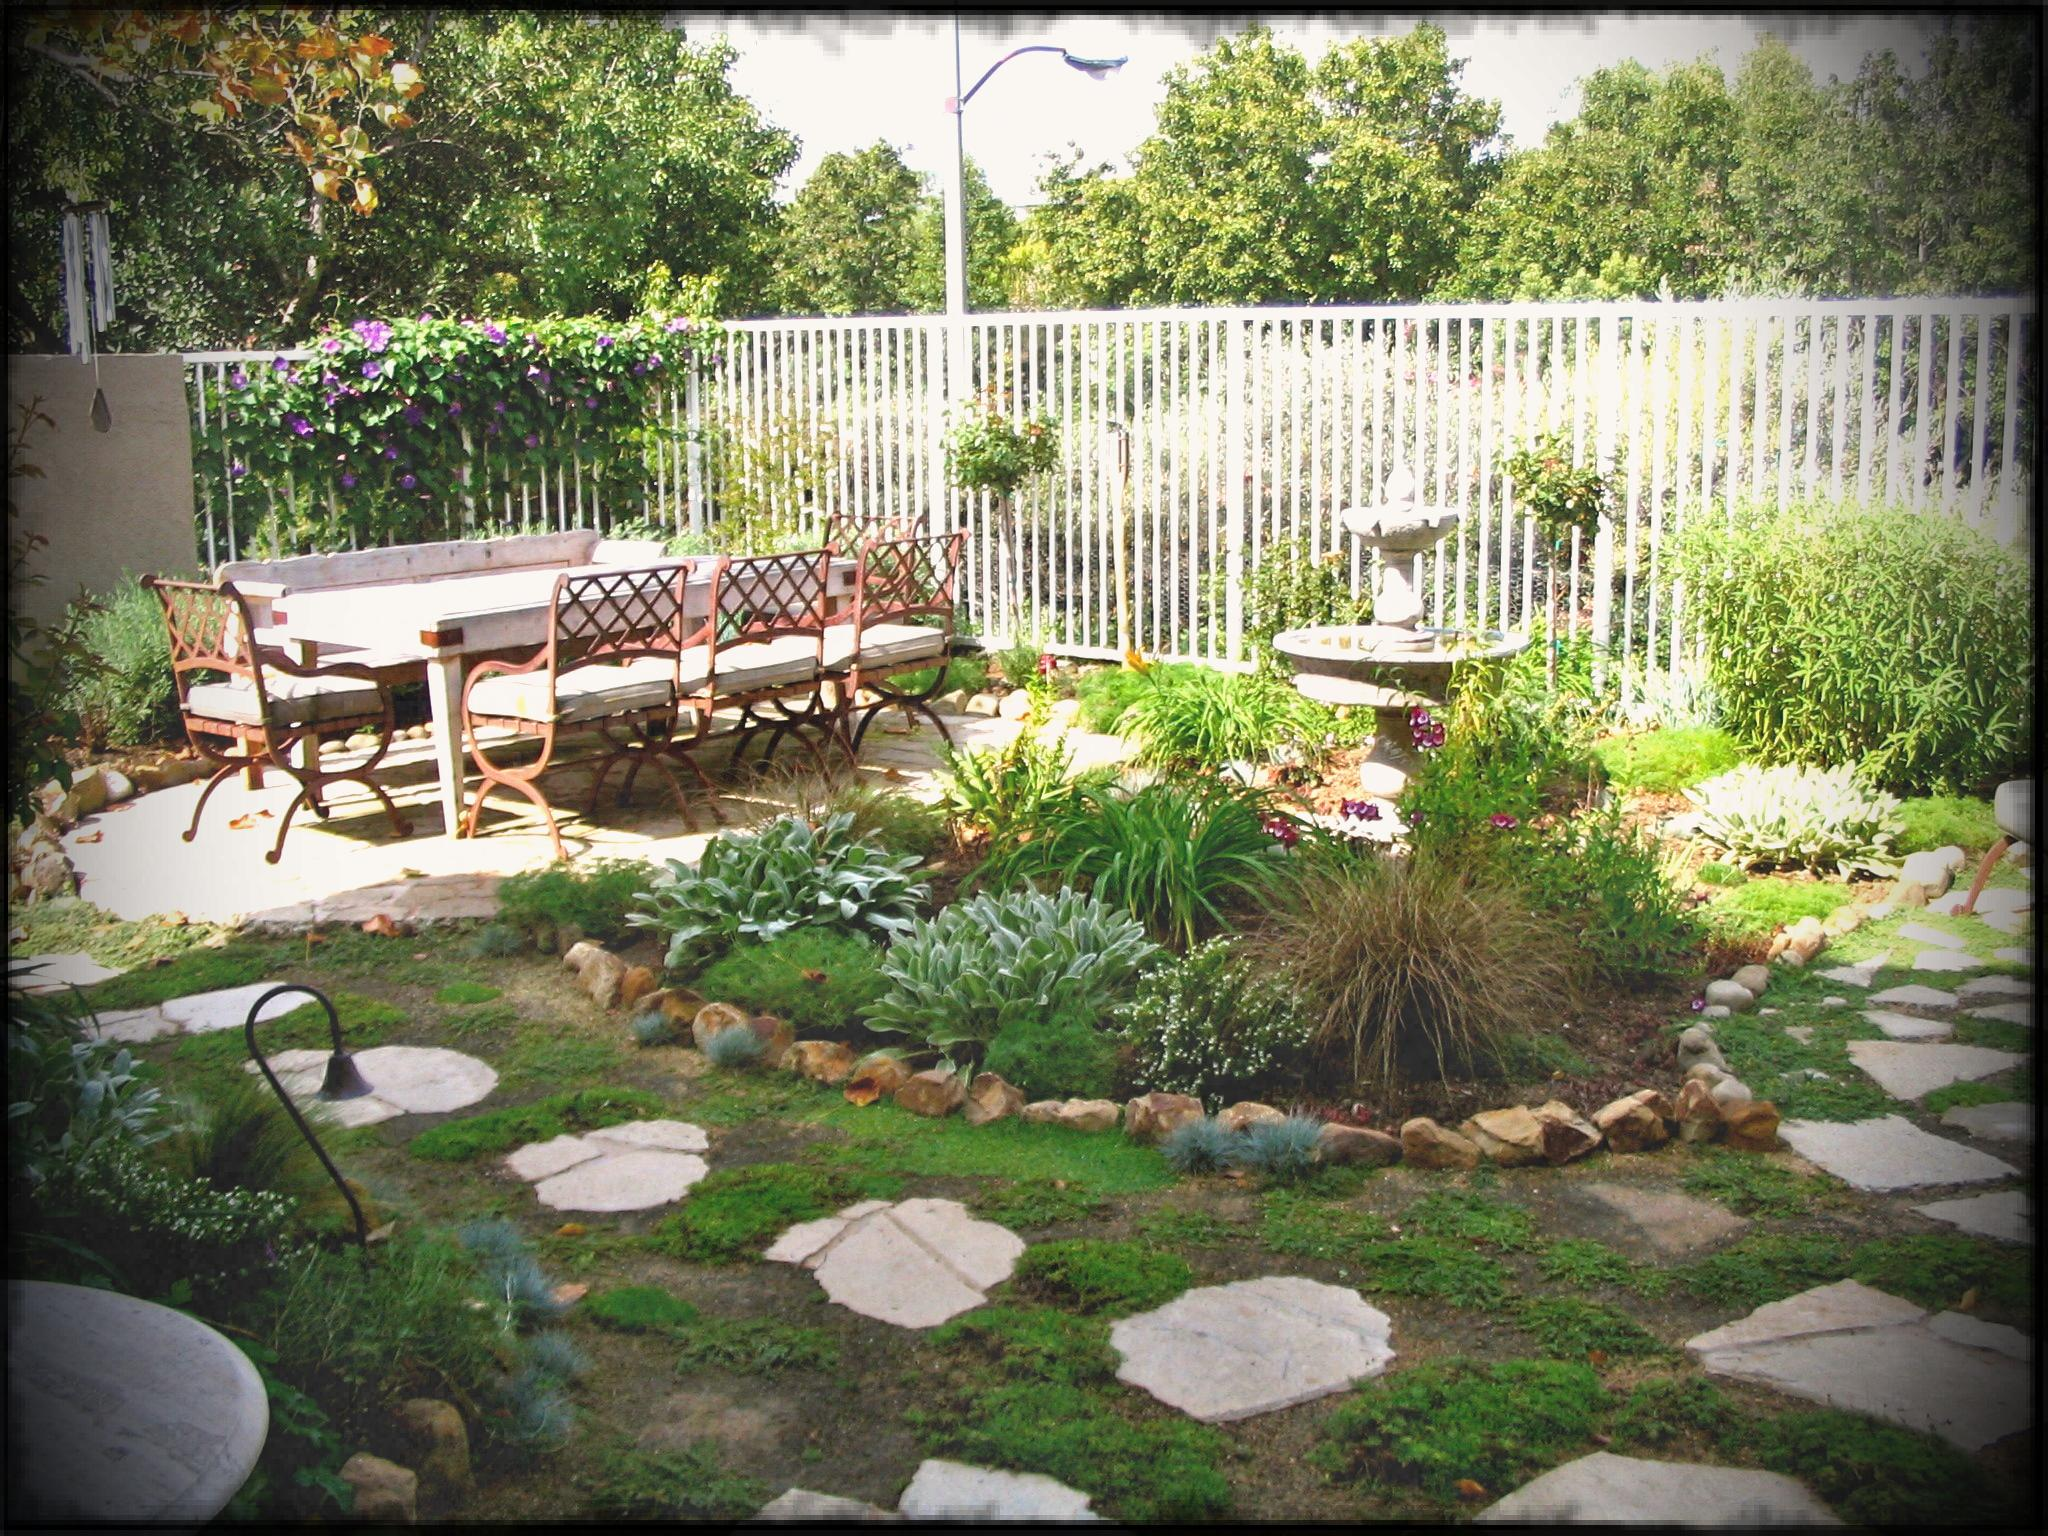 ... Landscaping Garden Design Ideas For A Small Yard. WA ...